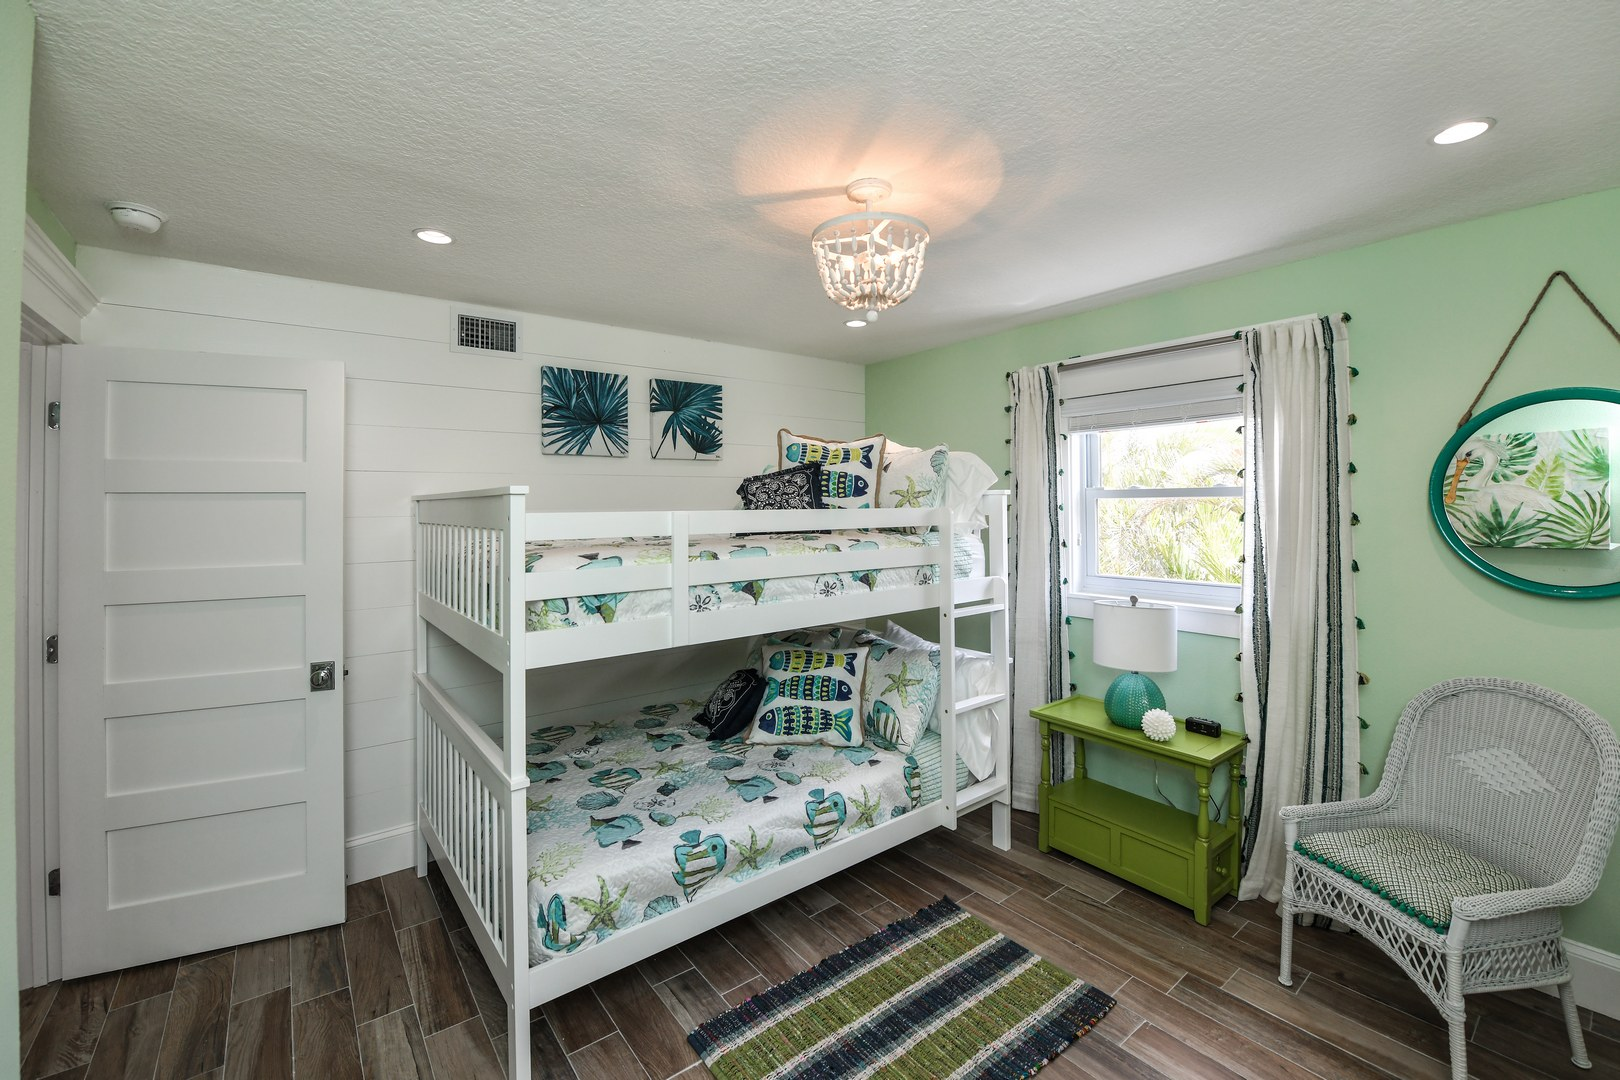 Example Photo - Full Bed over Full Bed Bunk Beds